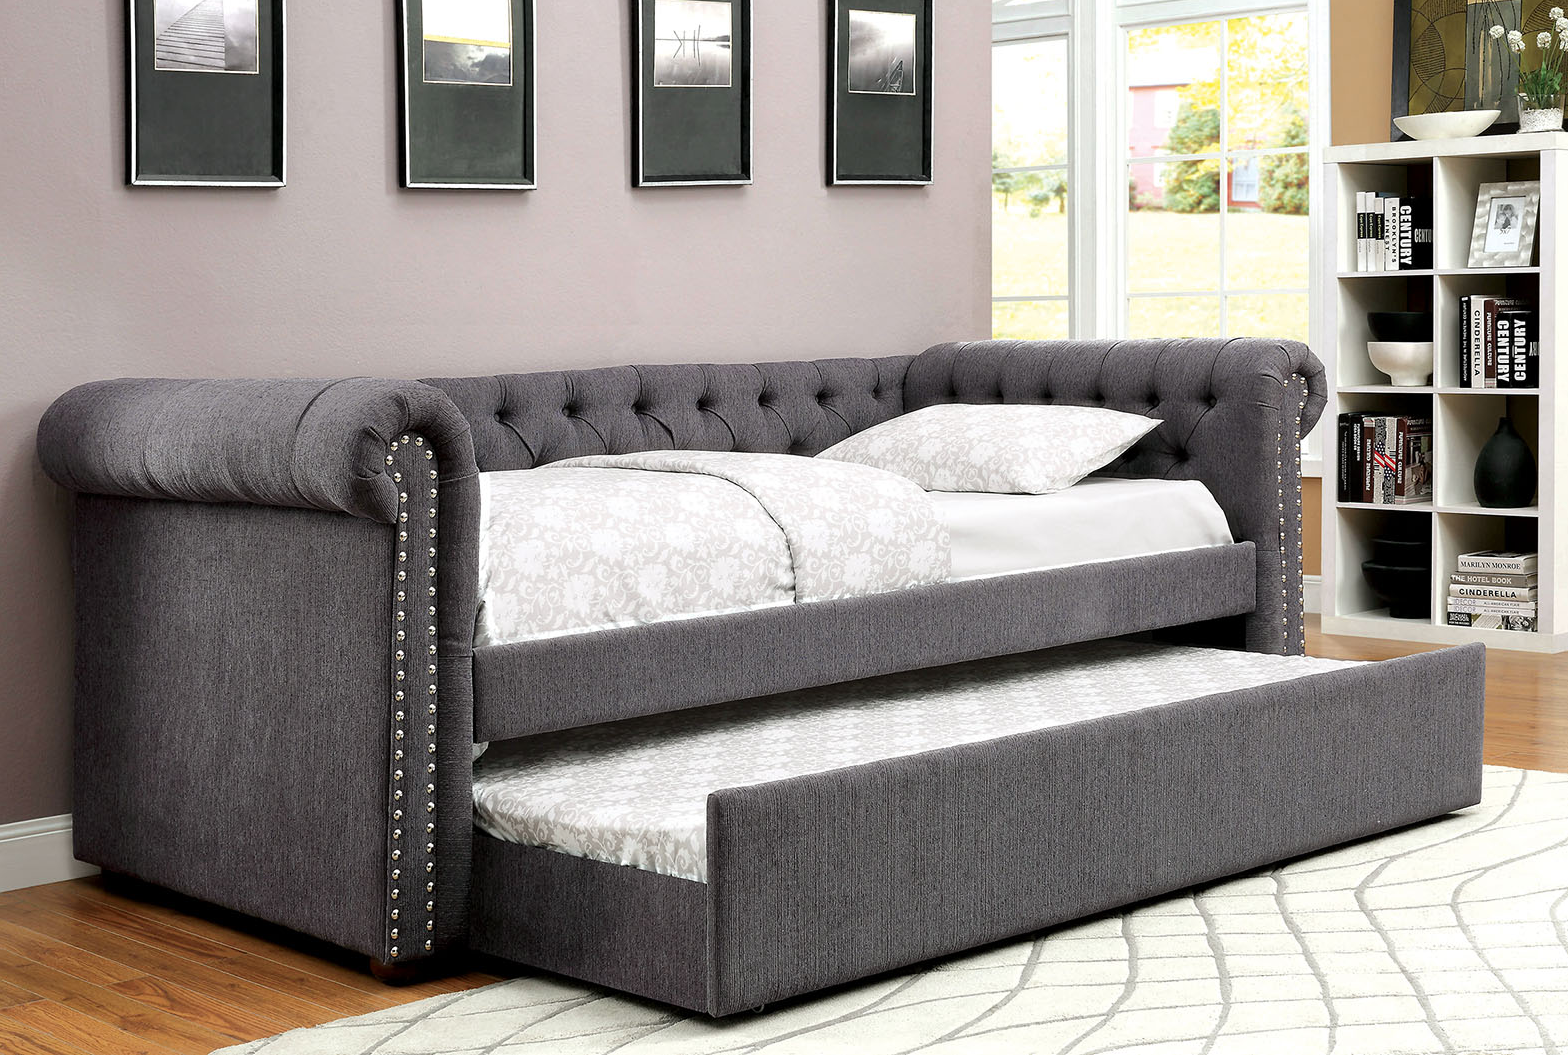 chesterfield tufted daybed with trundle in gray